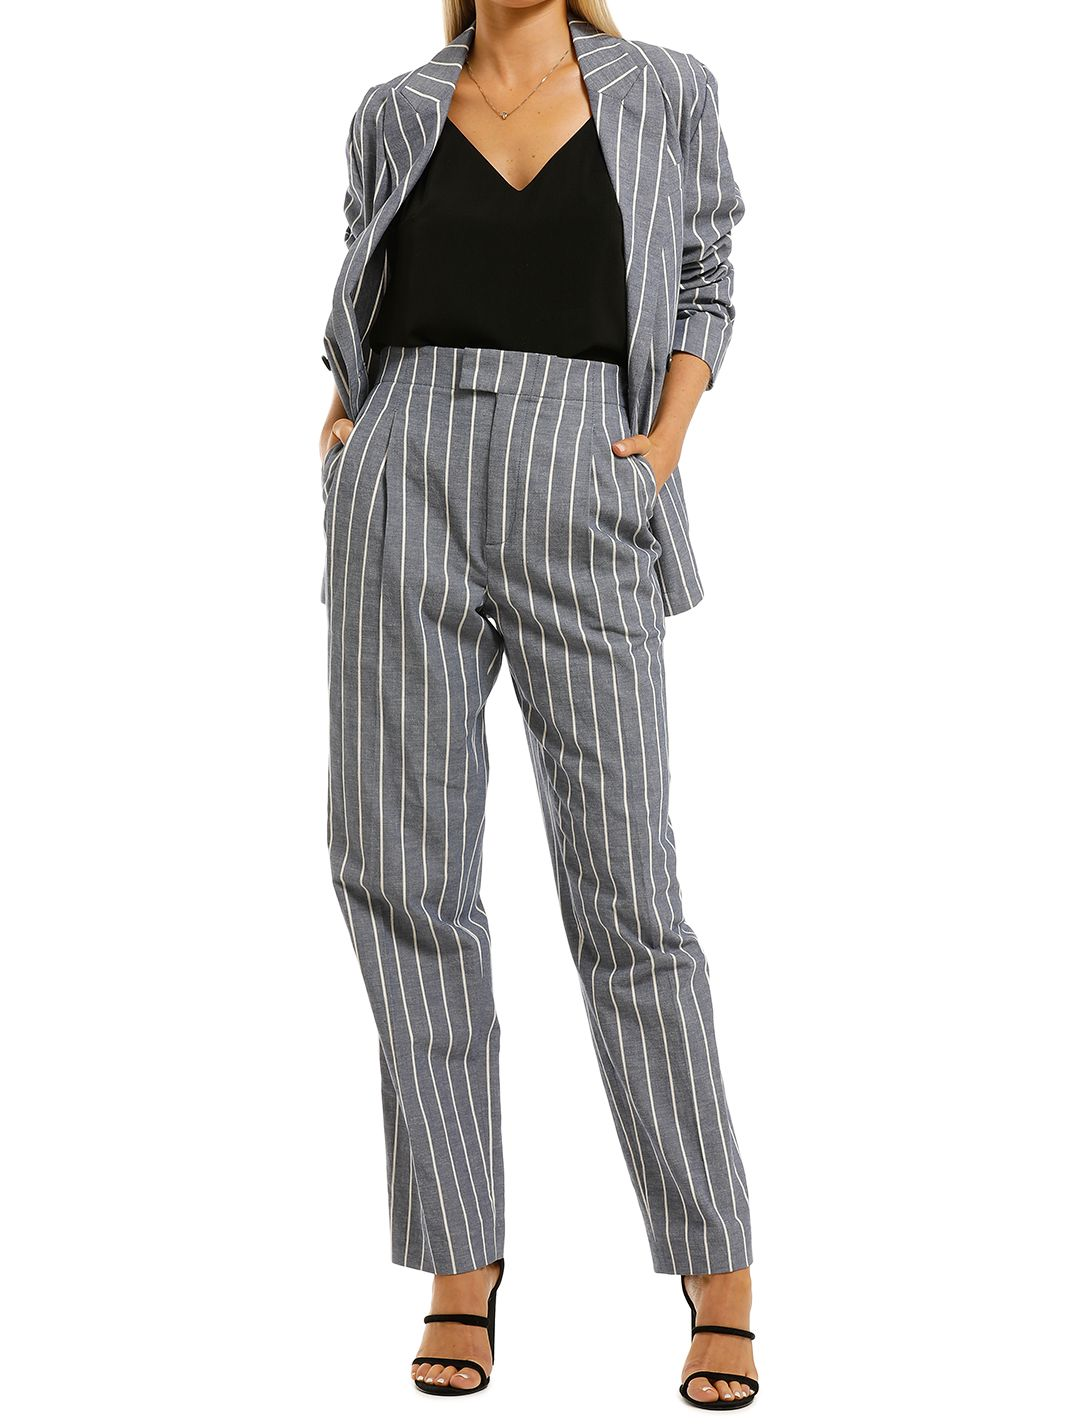 Laquintane-Double-Breasted-Jacket-and-Pant-Set-Indigo-Stripe-Front